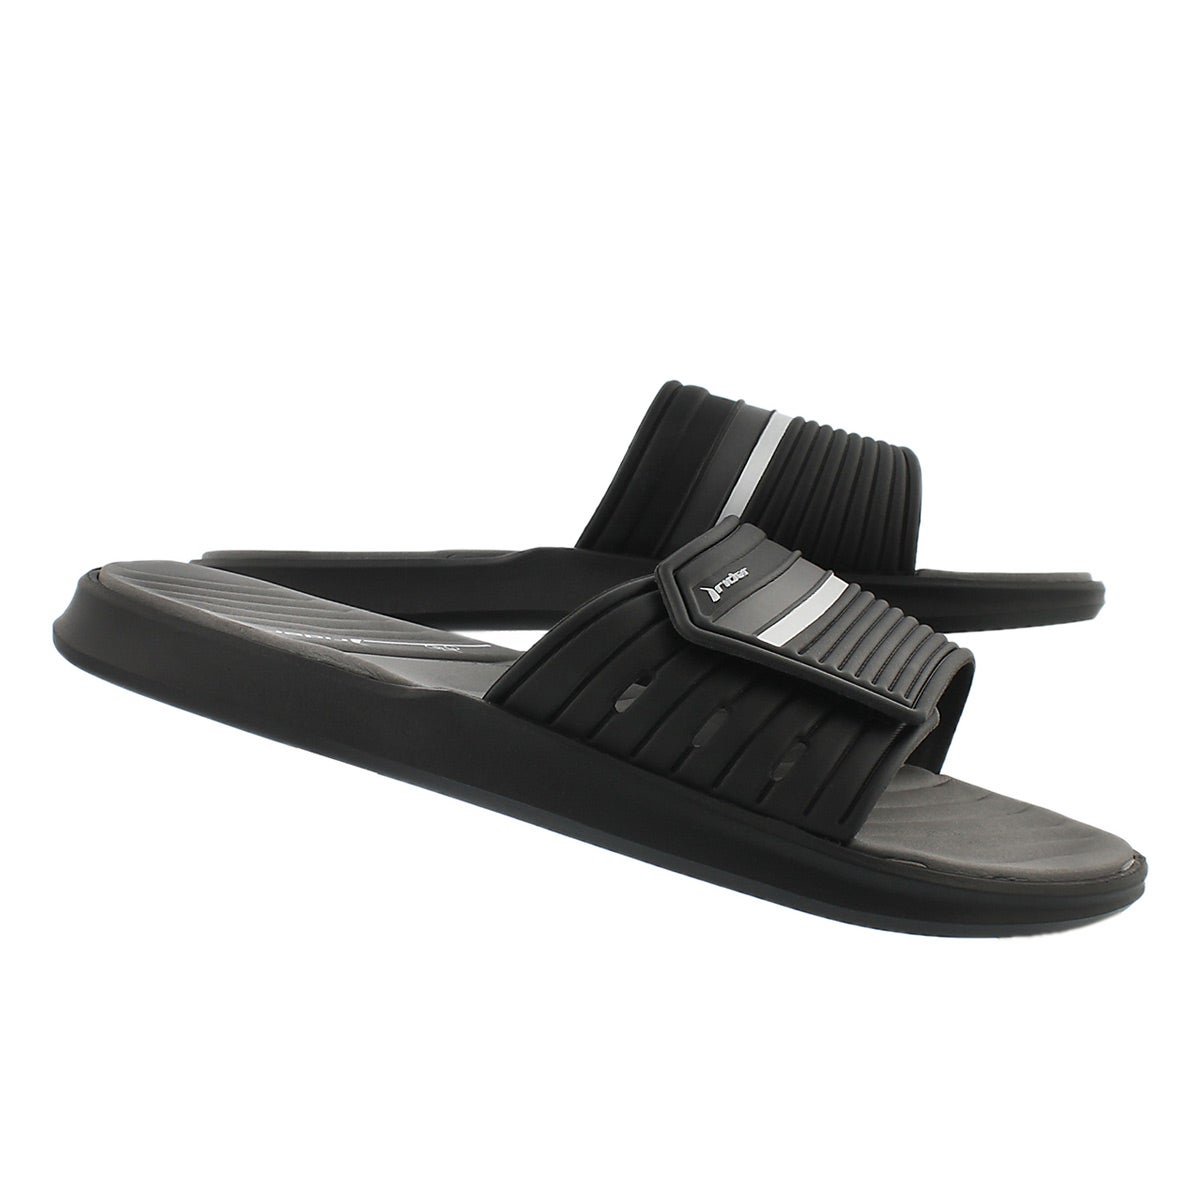 Mns Rail black/grey slide sport sandal